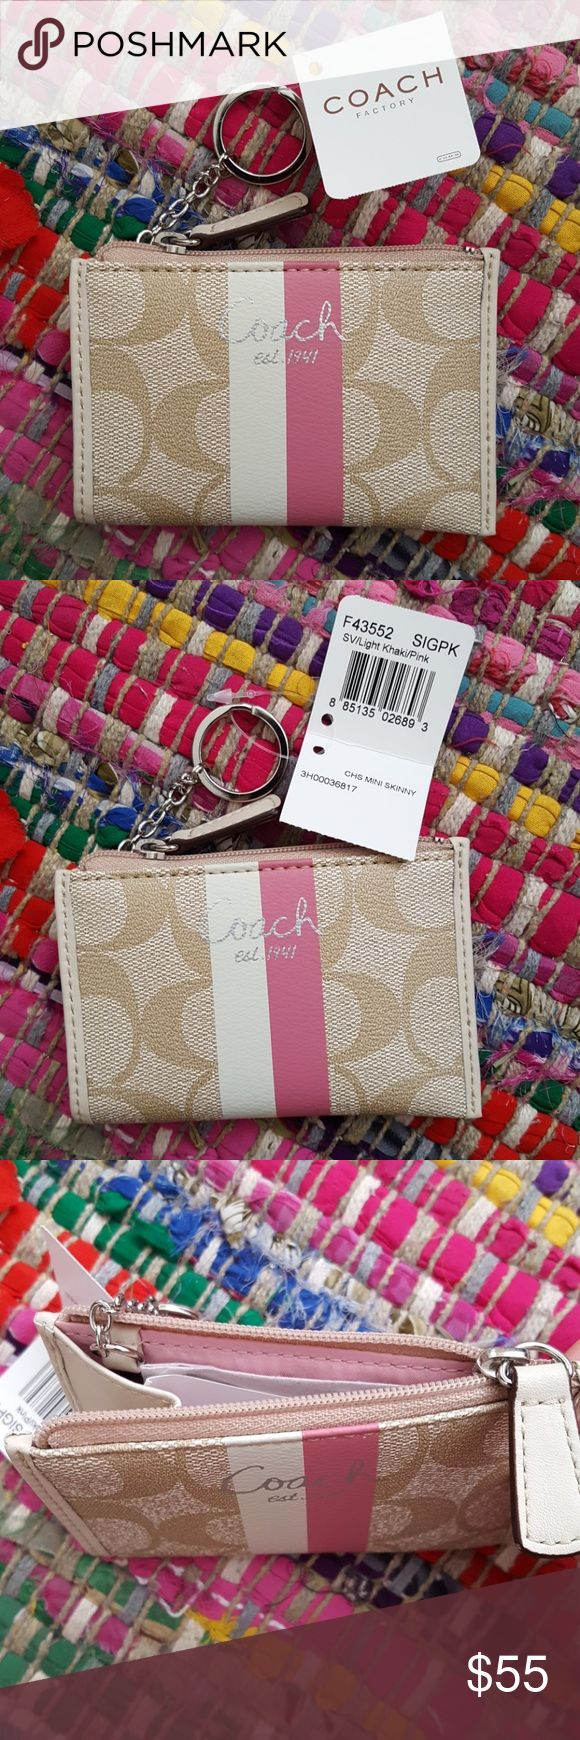 """Coach Mini Skinny Wallet Brand new with tag, original box, and tissue paper. Coach factory. Item F43552. Pink lining. Zipper closure. Key ring. 4.5"""" length. Approx. 3"""" height. Coach Bags Wallets"""